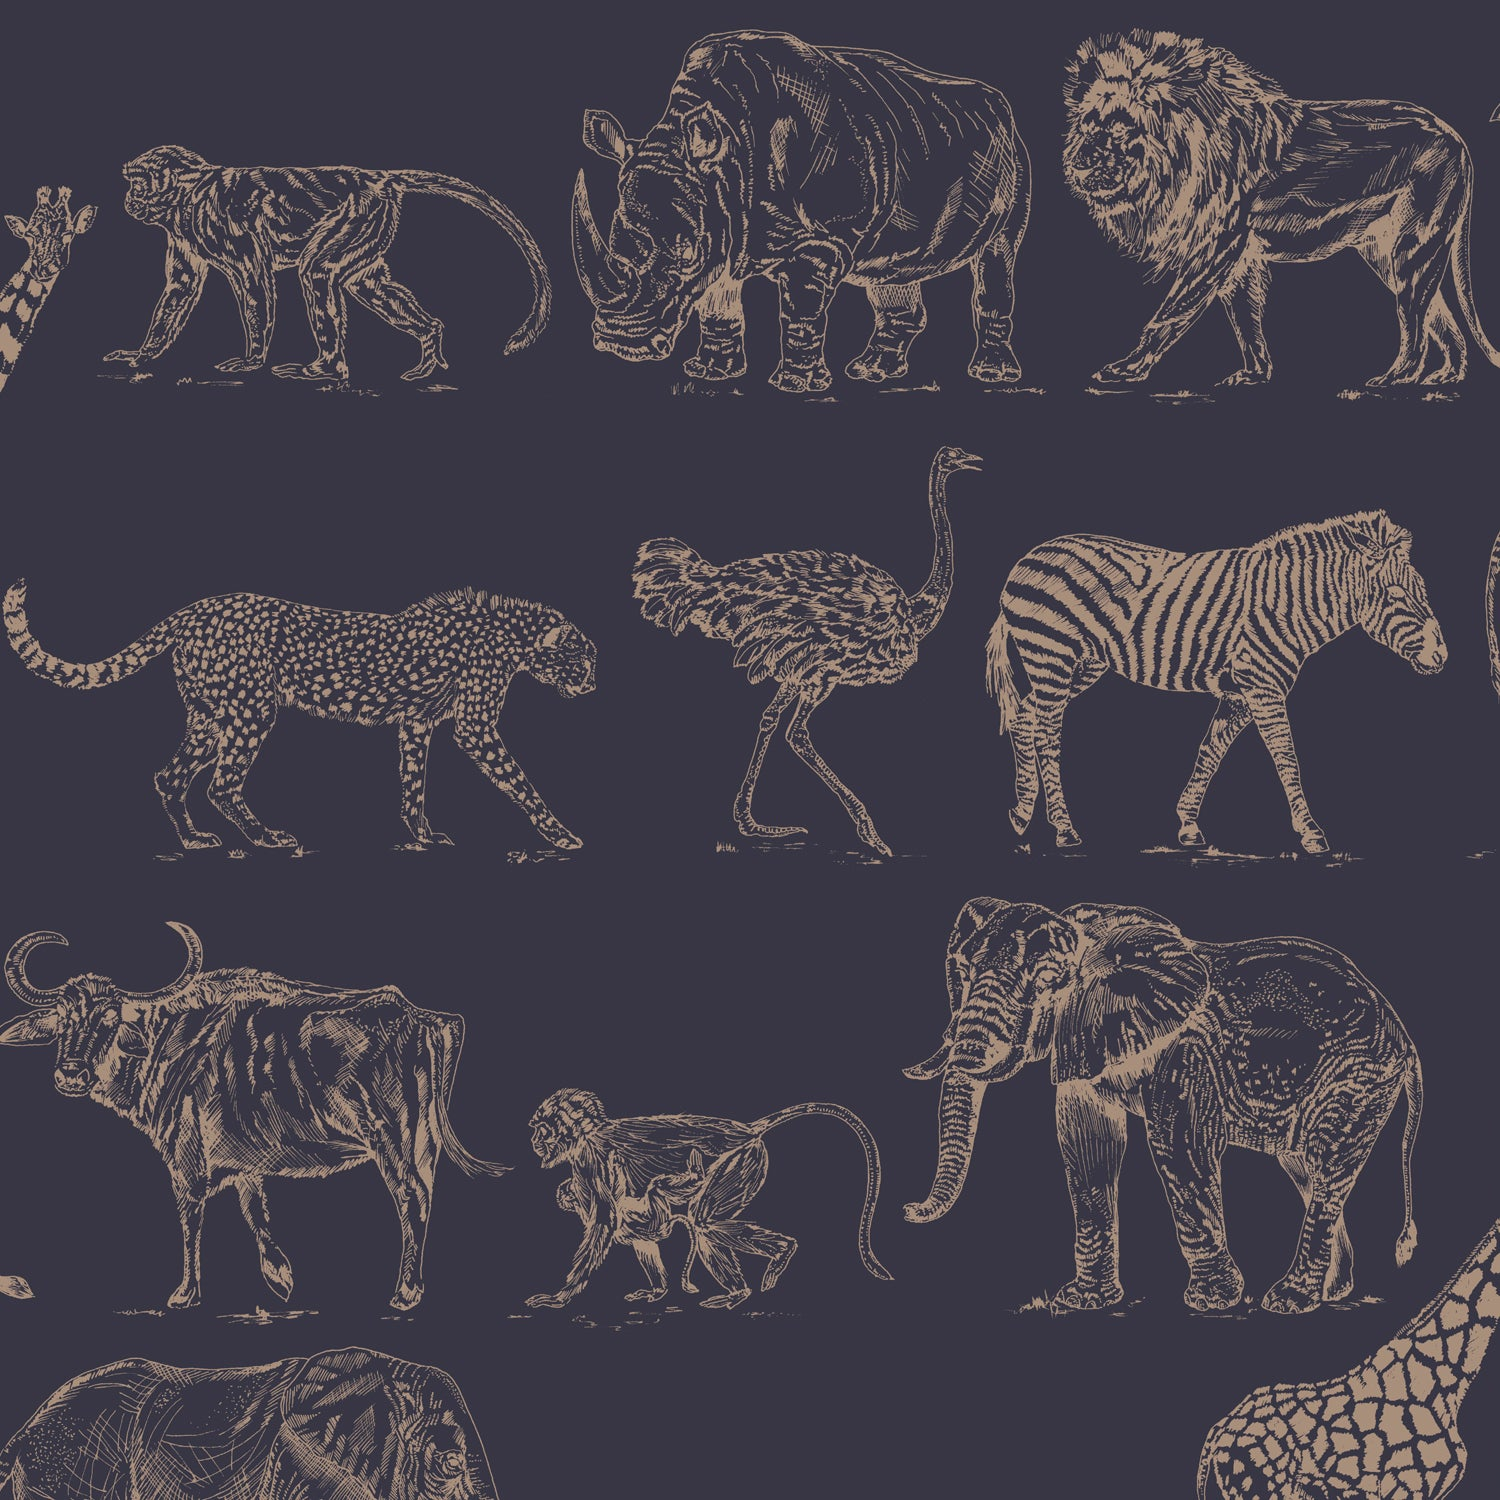 Safari Animal Motif Wallpaper | Matt Blue and Metallic Rose Gold